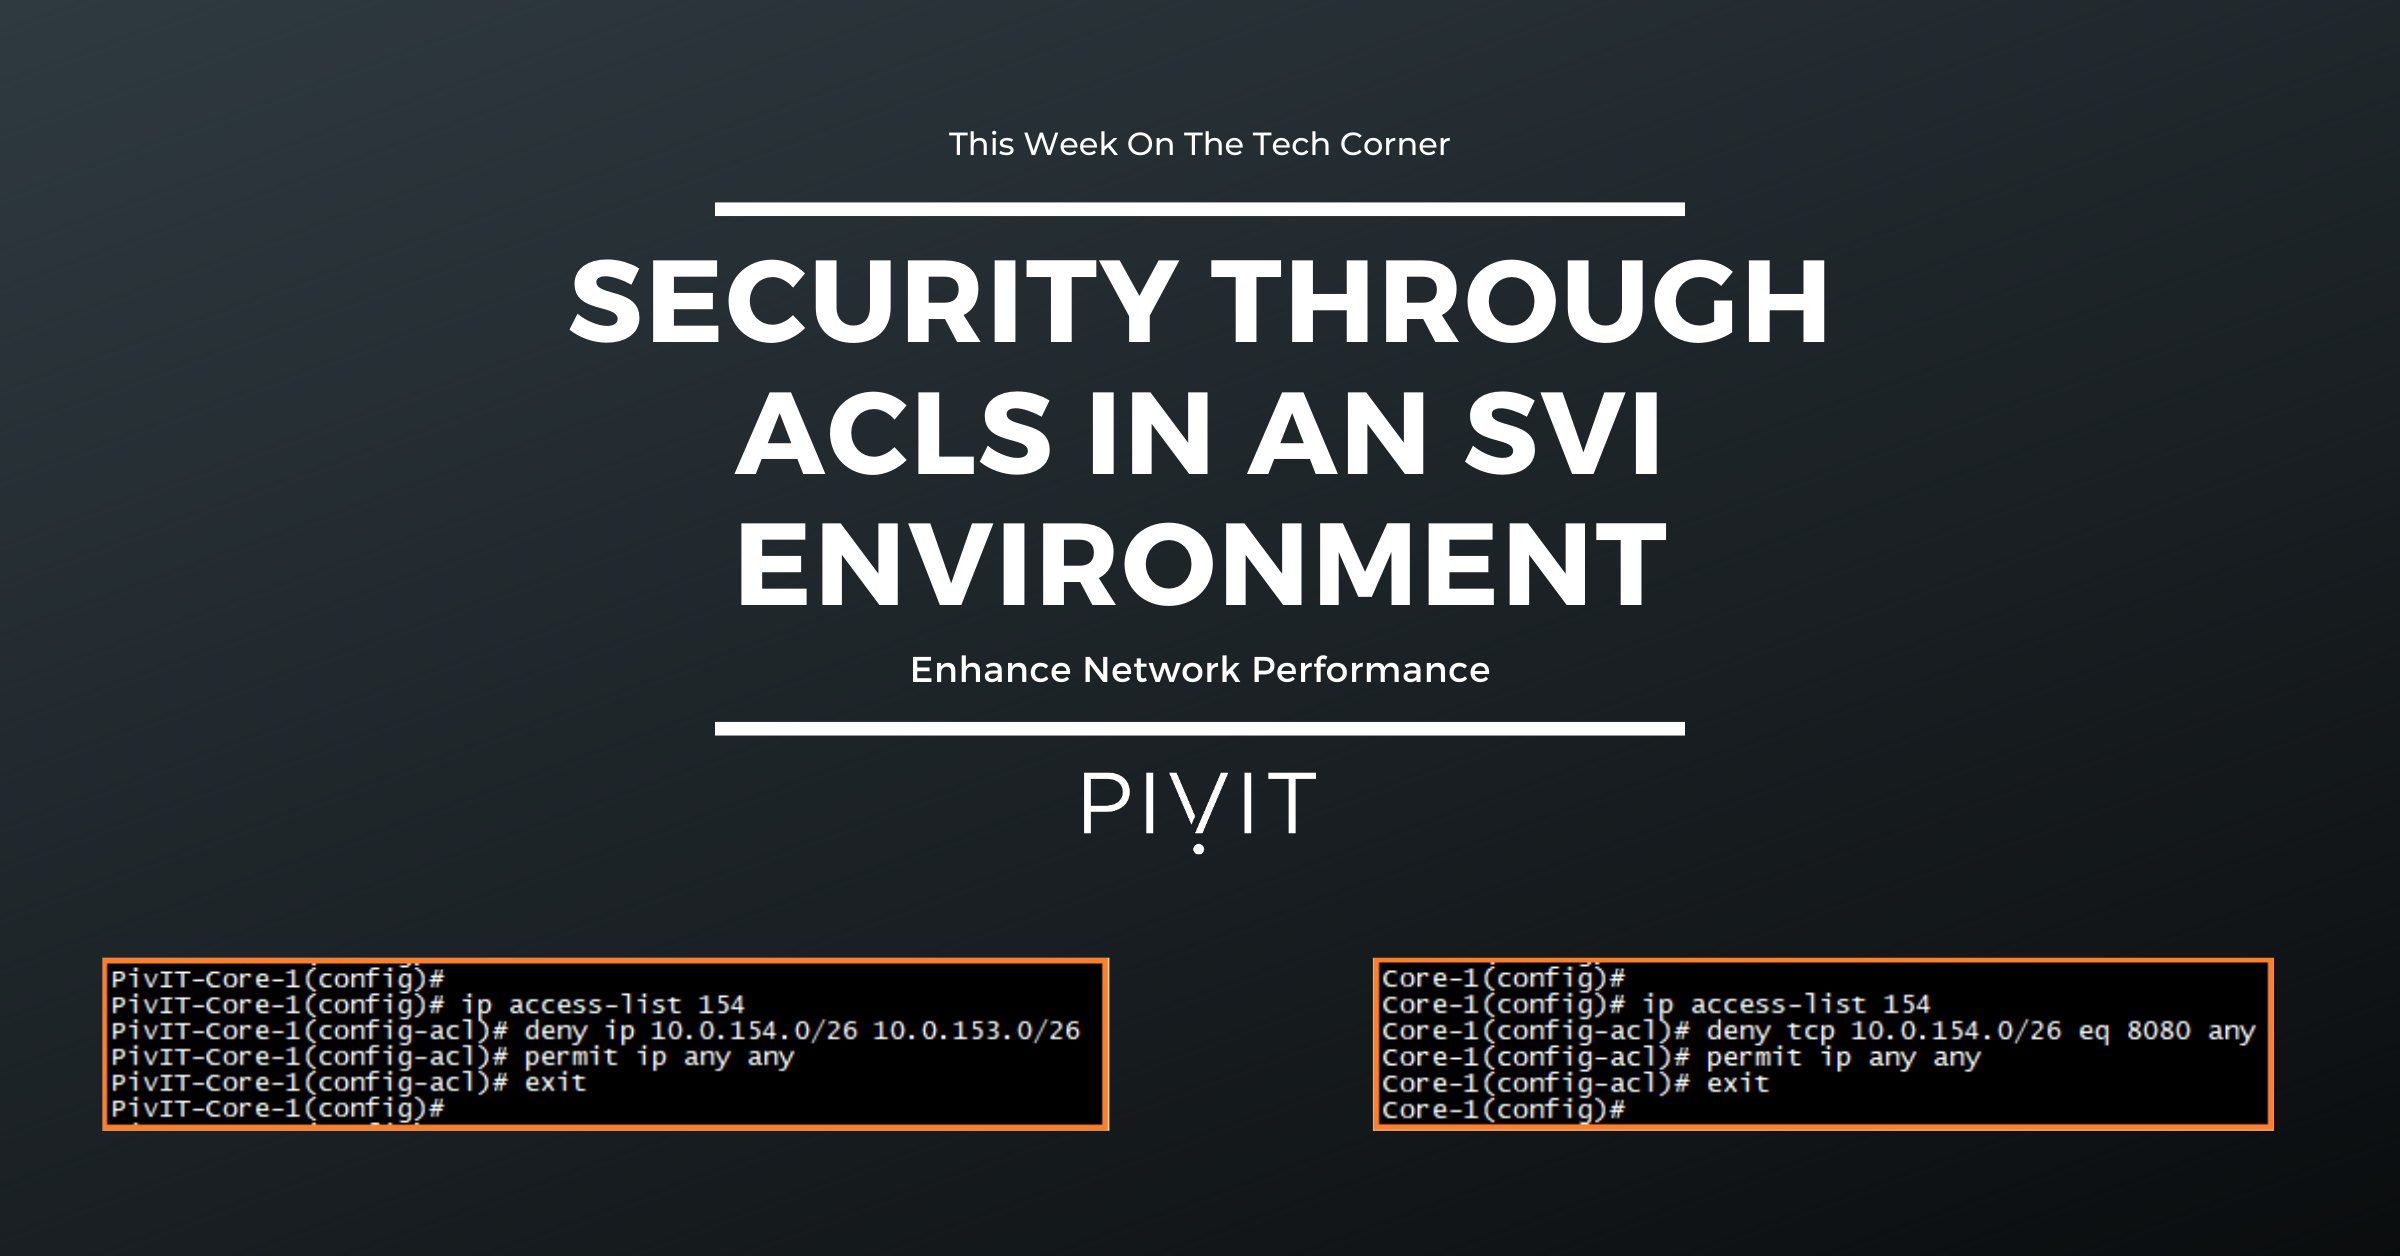 Configure Network Security Using an ACL in SVI Environments